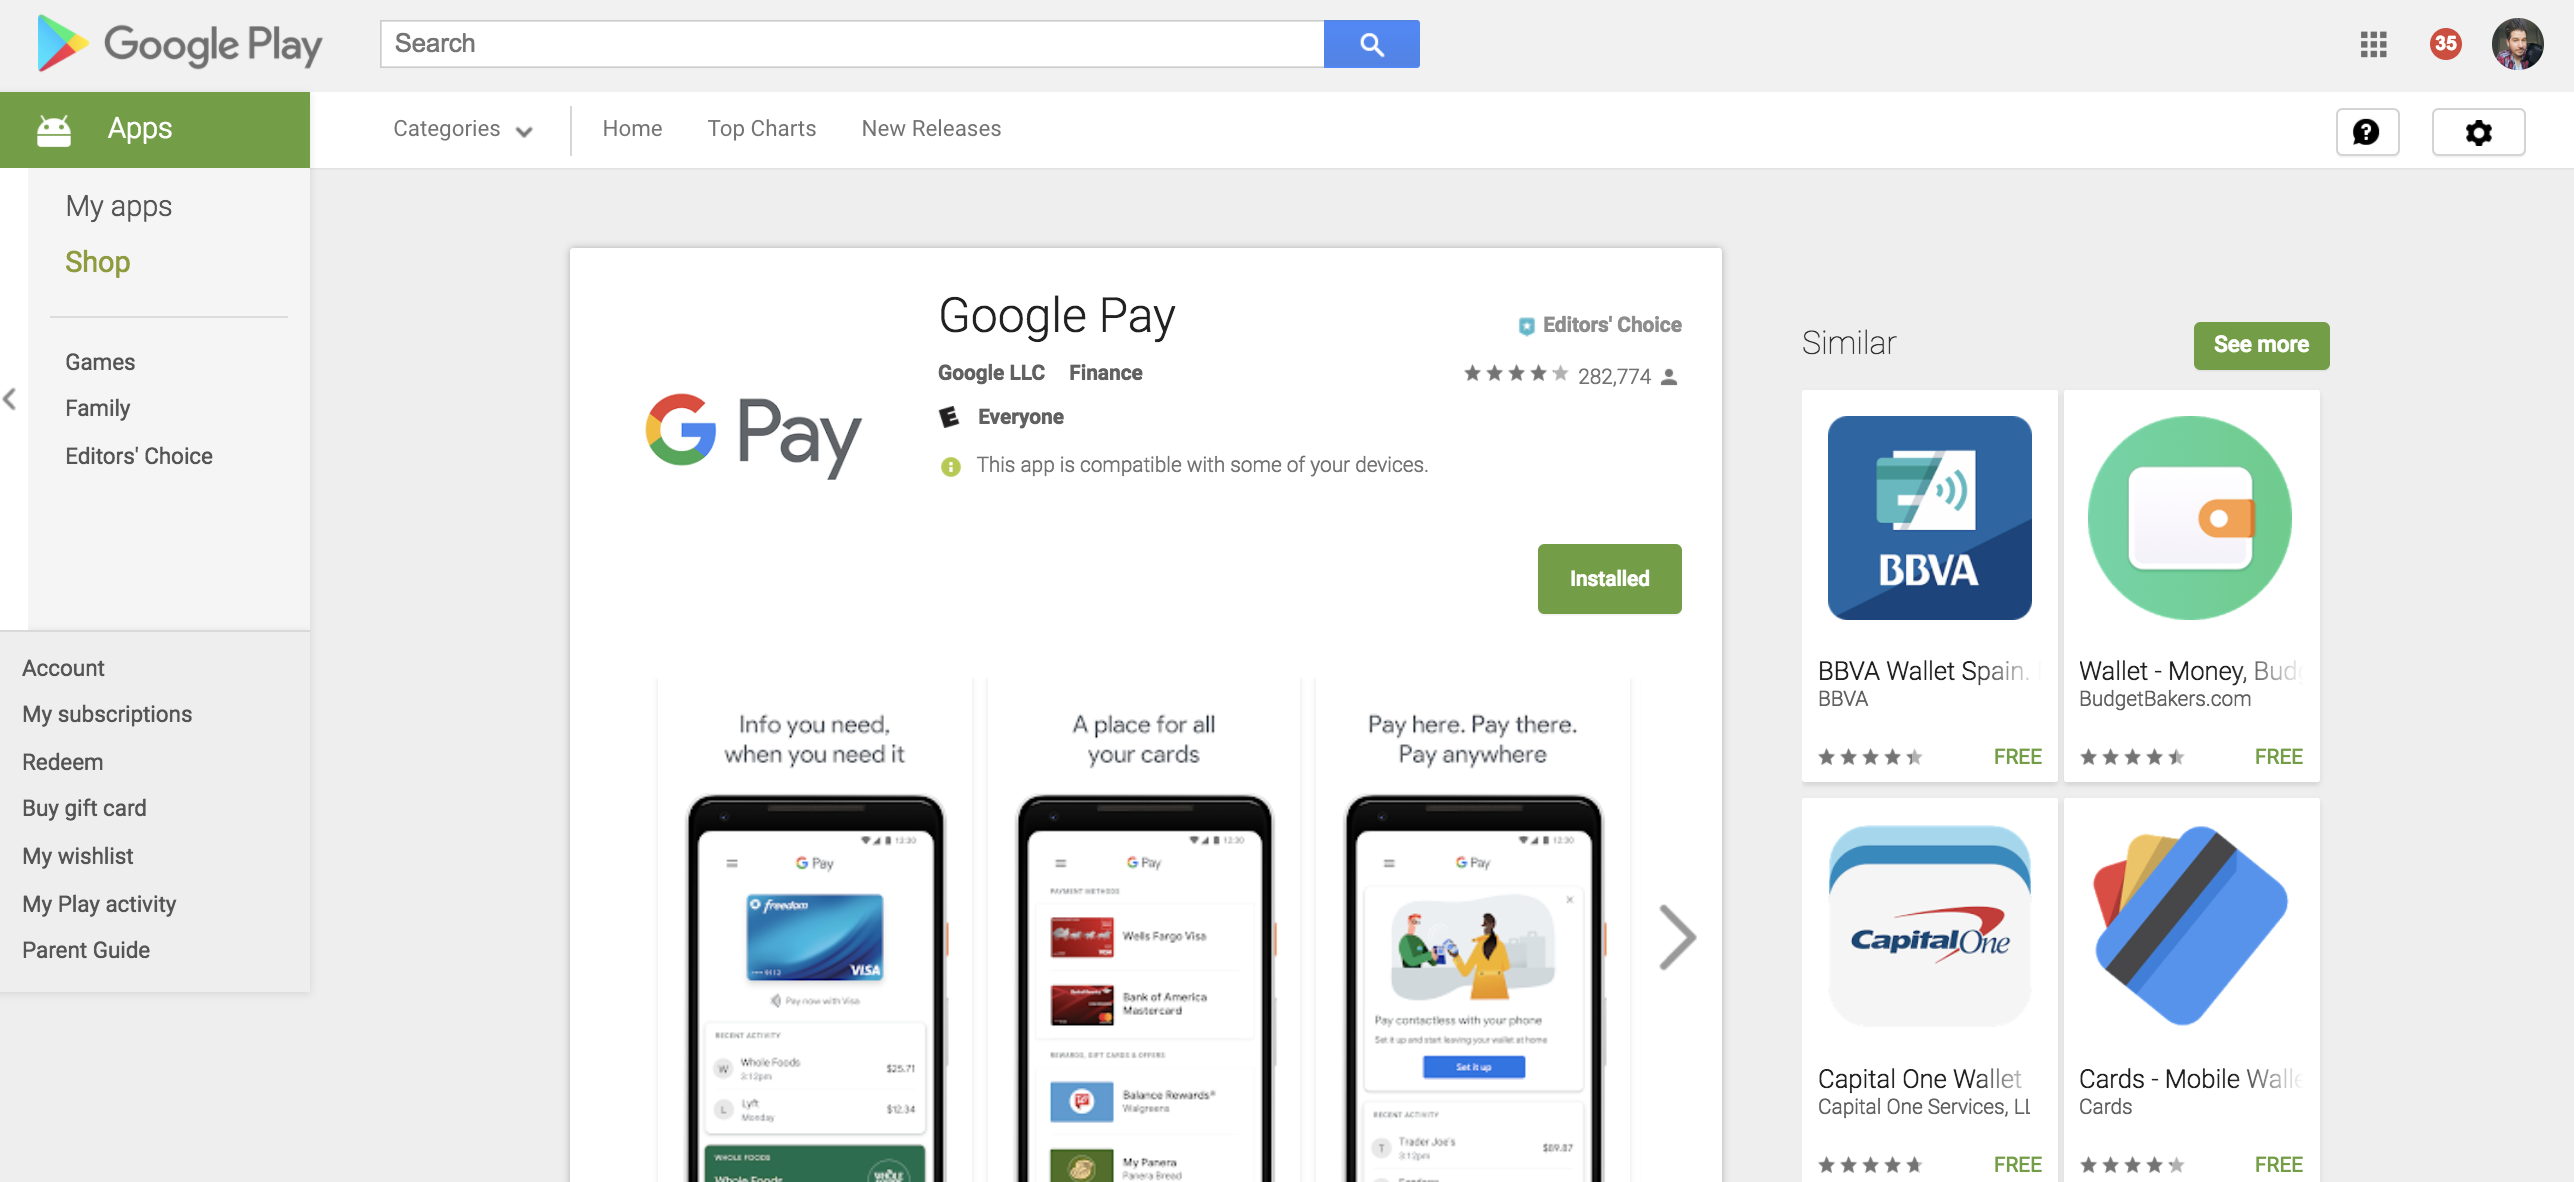 Google Pay is officially rolling out today